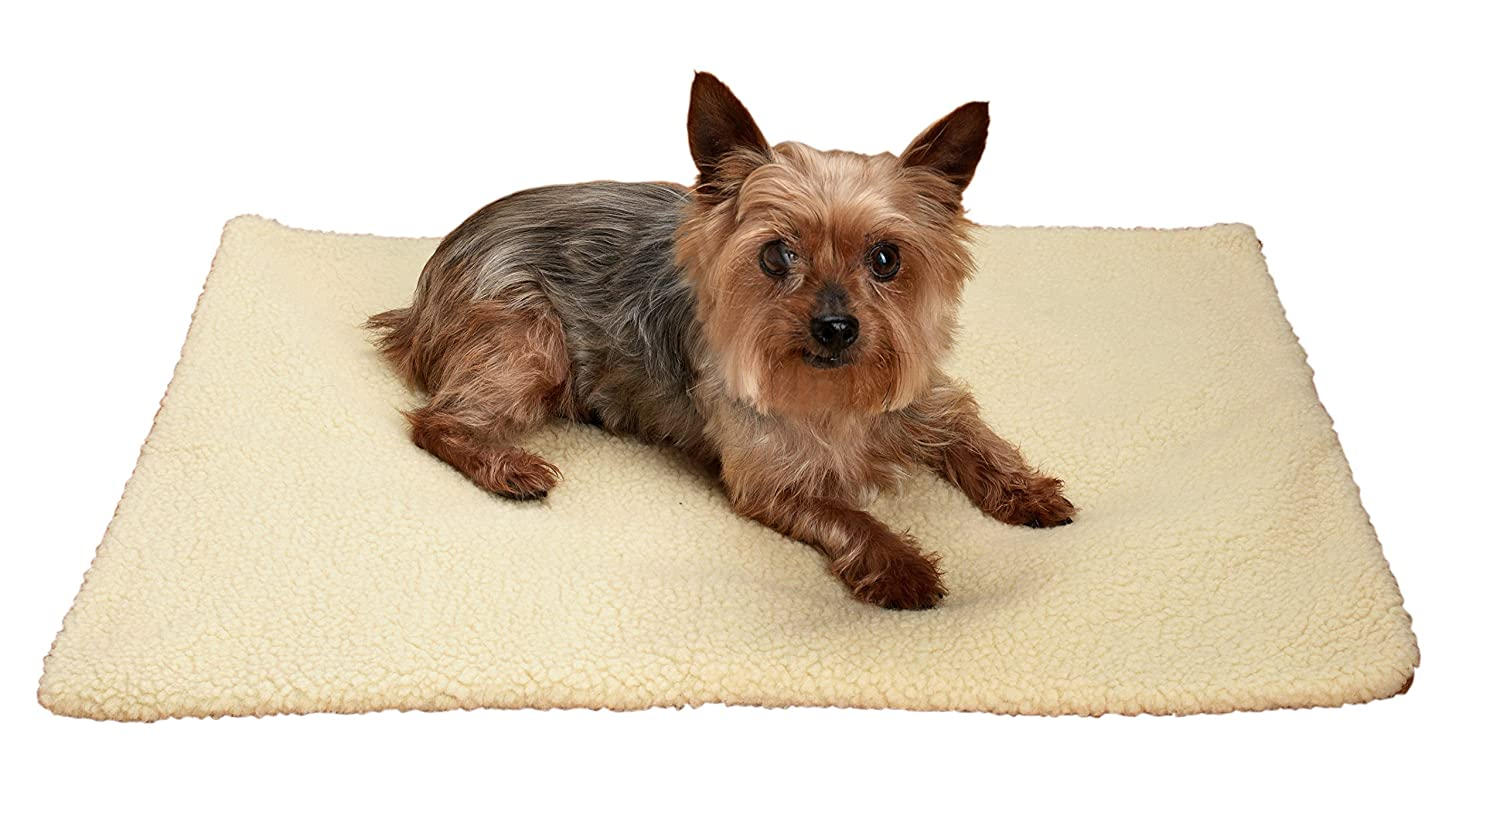 Perfect Life Ideas Self Warming Heating Pad Cushion Mat Bed for Dogs Cats Pets - Enclosed Heat Reflecting Layer Reflects Pets Own Thermal Body Heat - Washable Zippered Cover with Non Slip Bottom